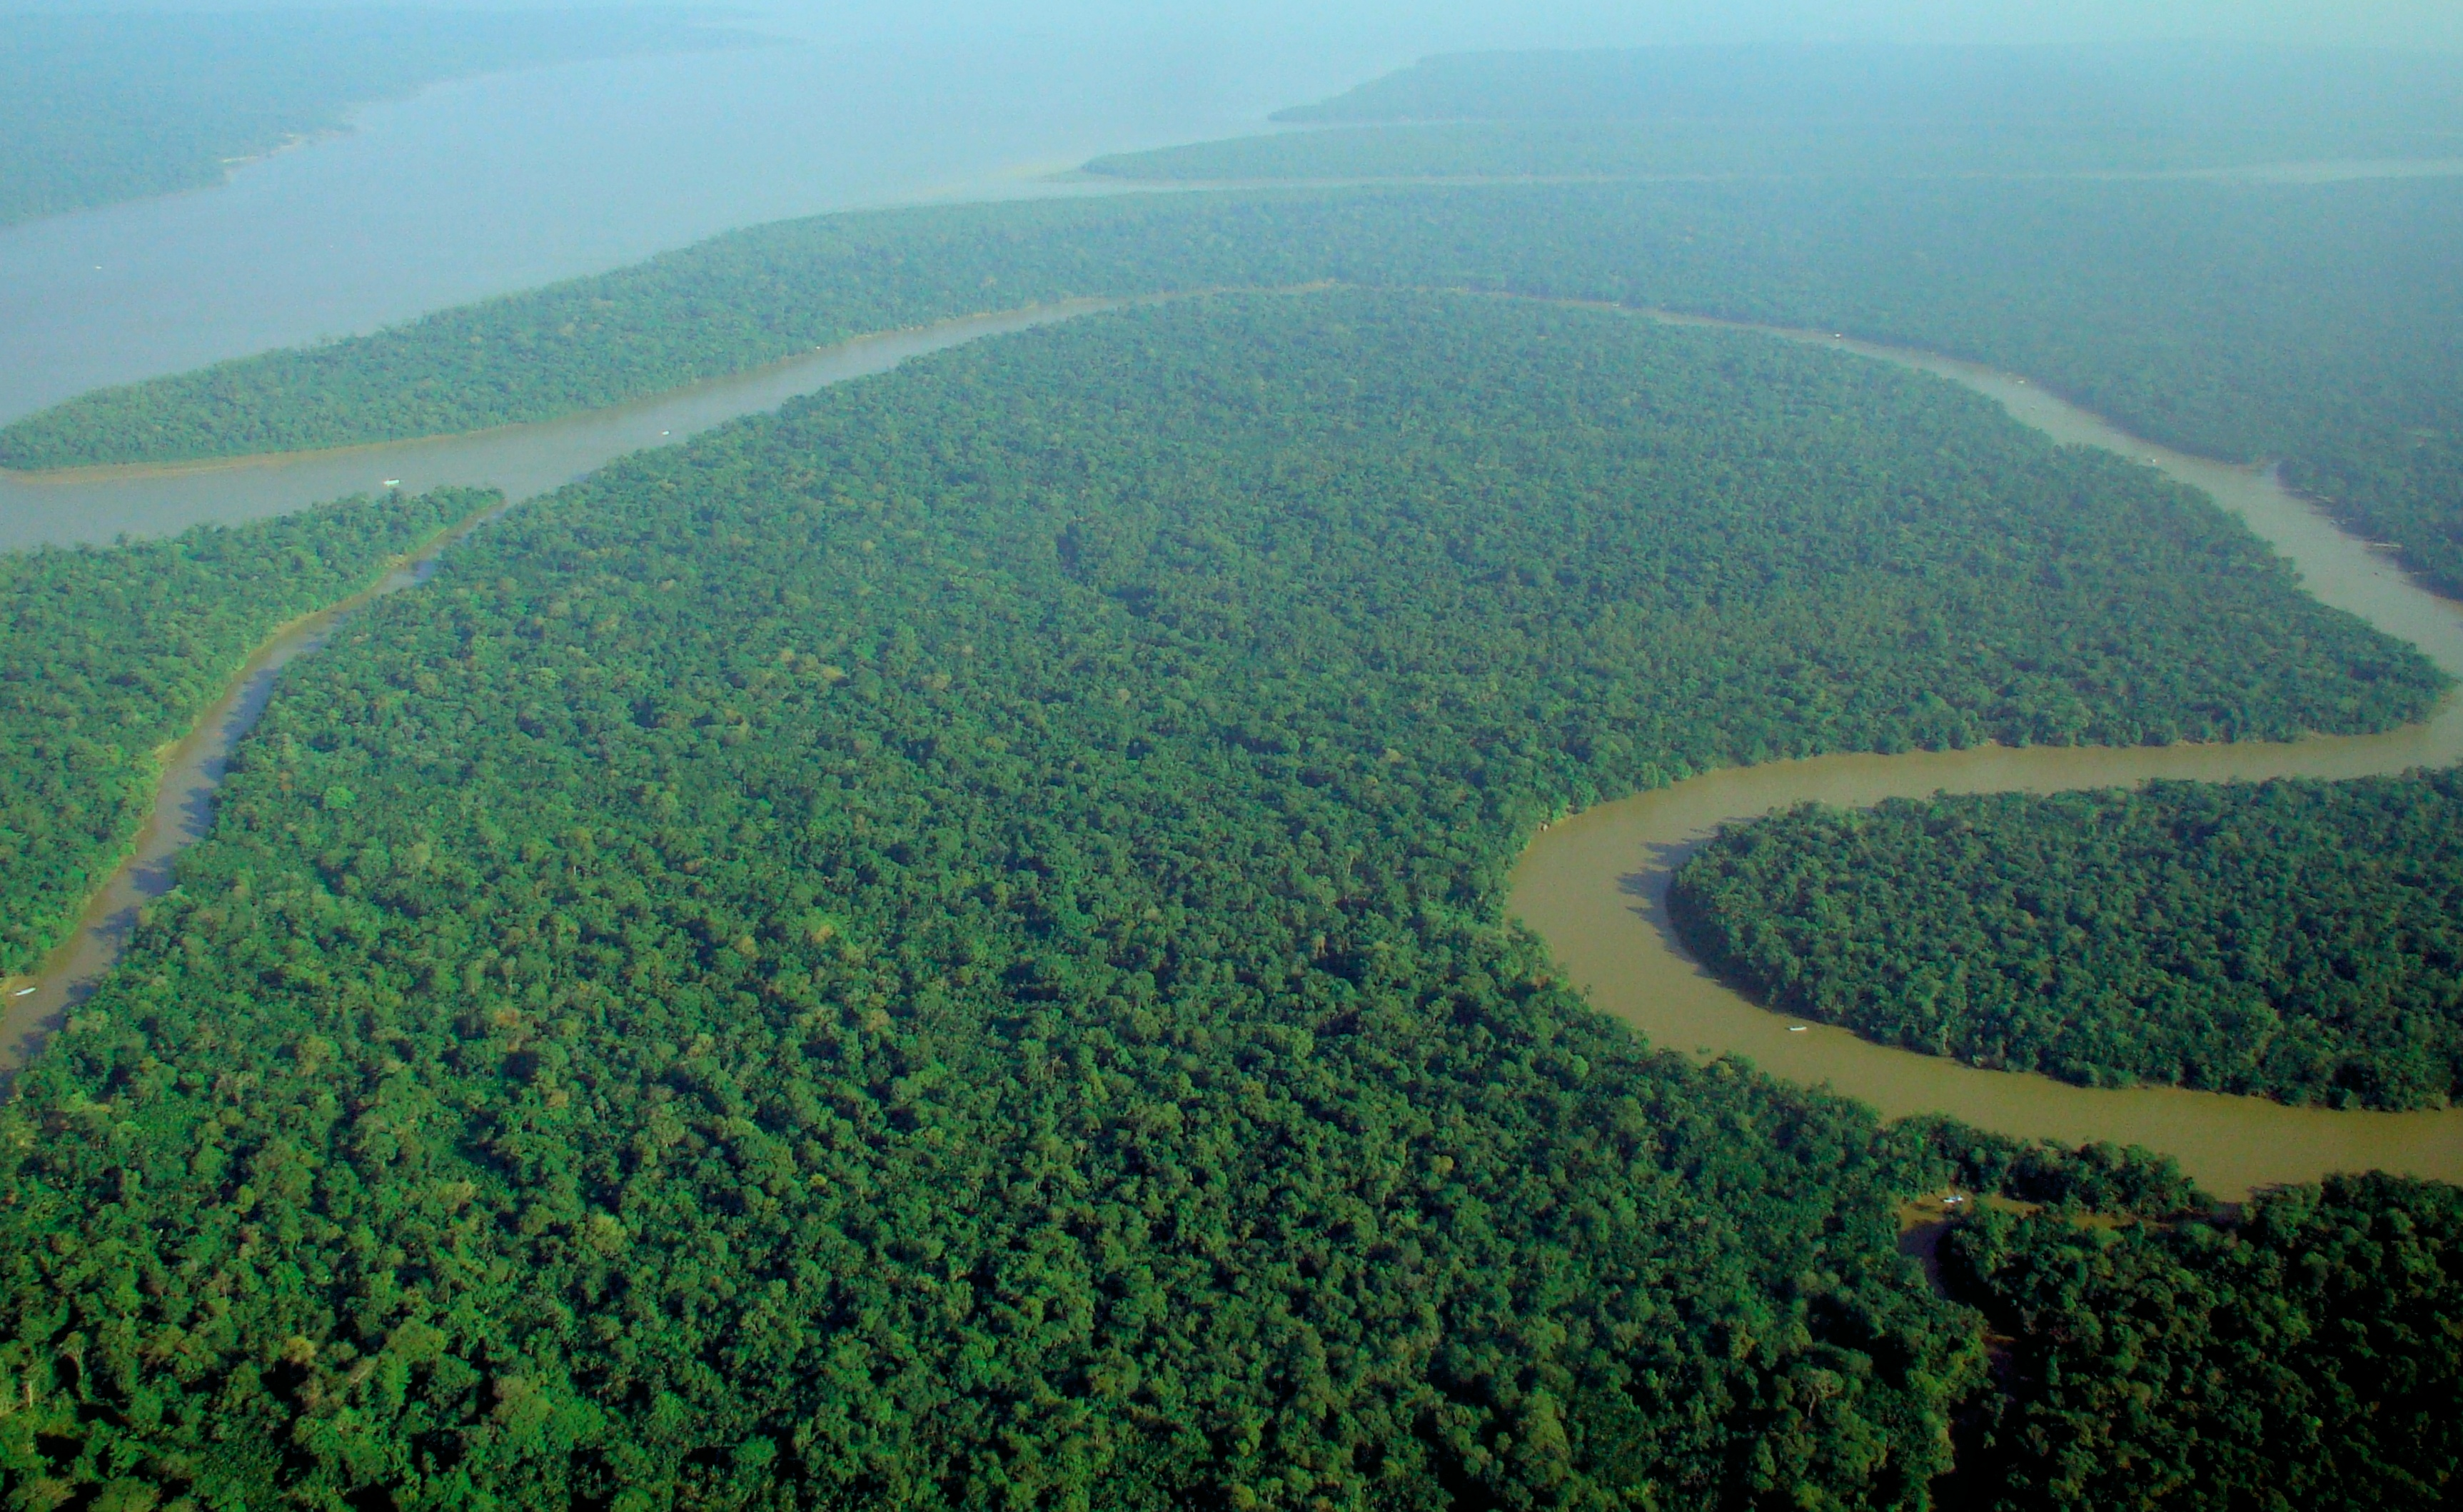 Geography essay help cannot find a website with info about sustainability rainforests?